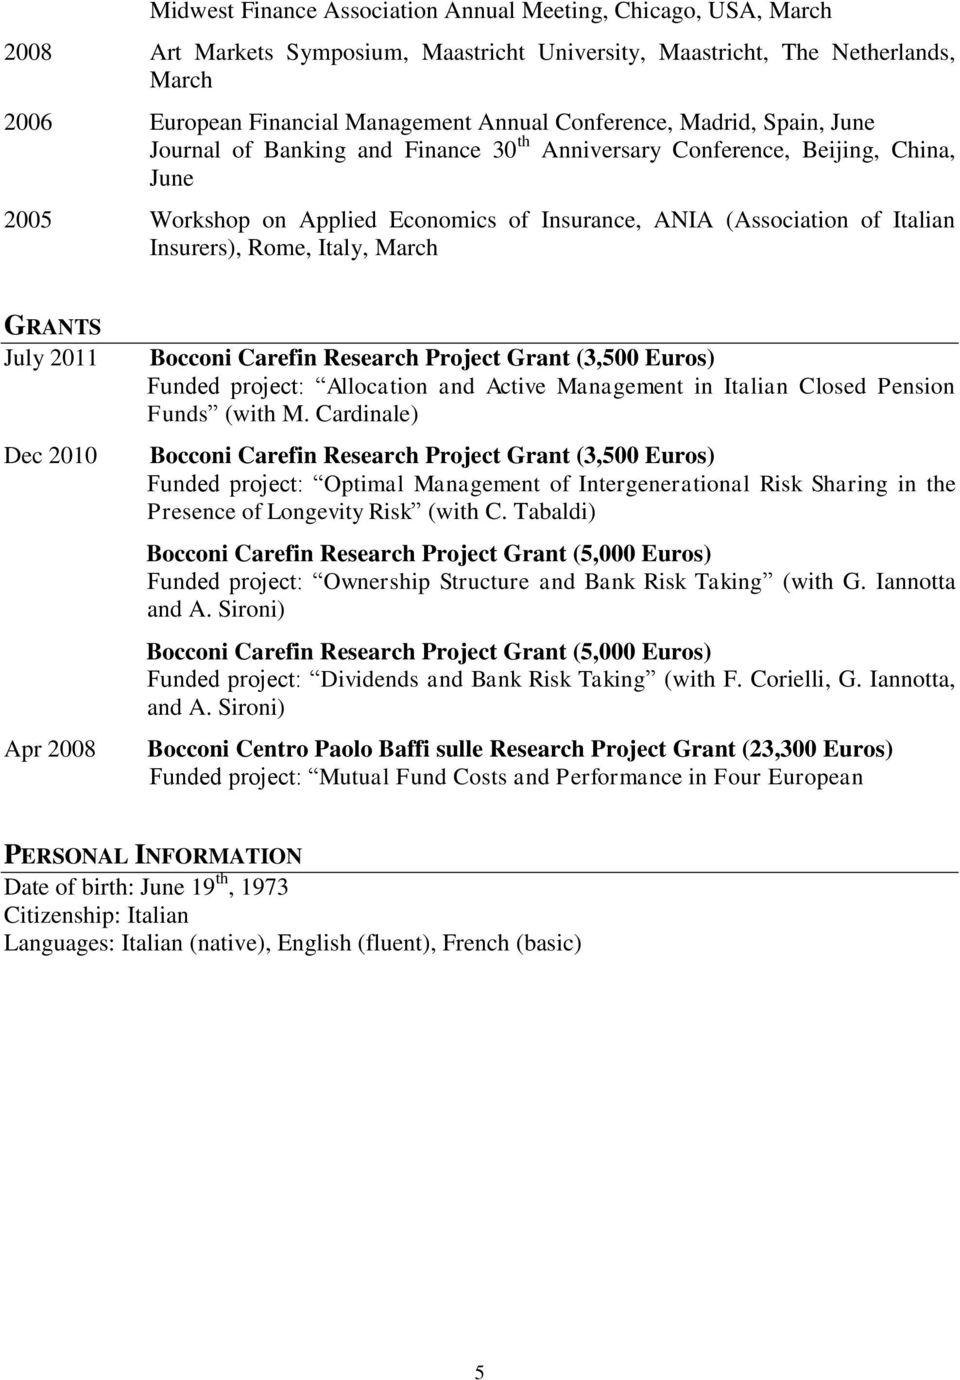 Insurers), Rome, Italy, March GRANTS July 2011 Dec 2010 Apr 2008 Bocconi Carefin Research Project Grant (3,500 Euros) Funded project: Allocation and Active Management in Italian Closed Pension Funds